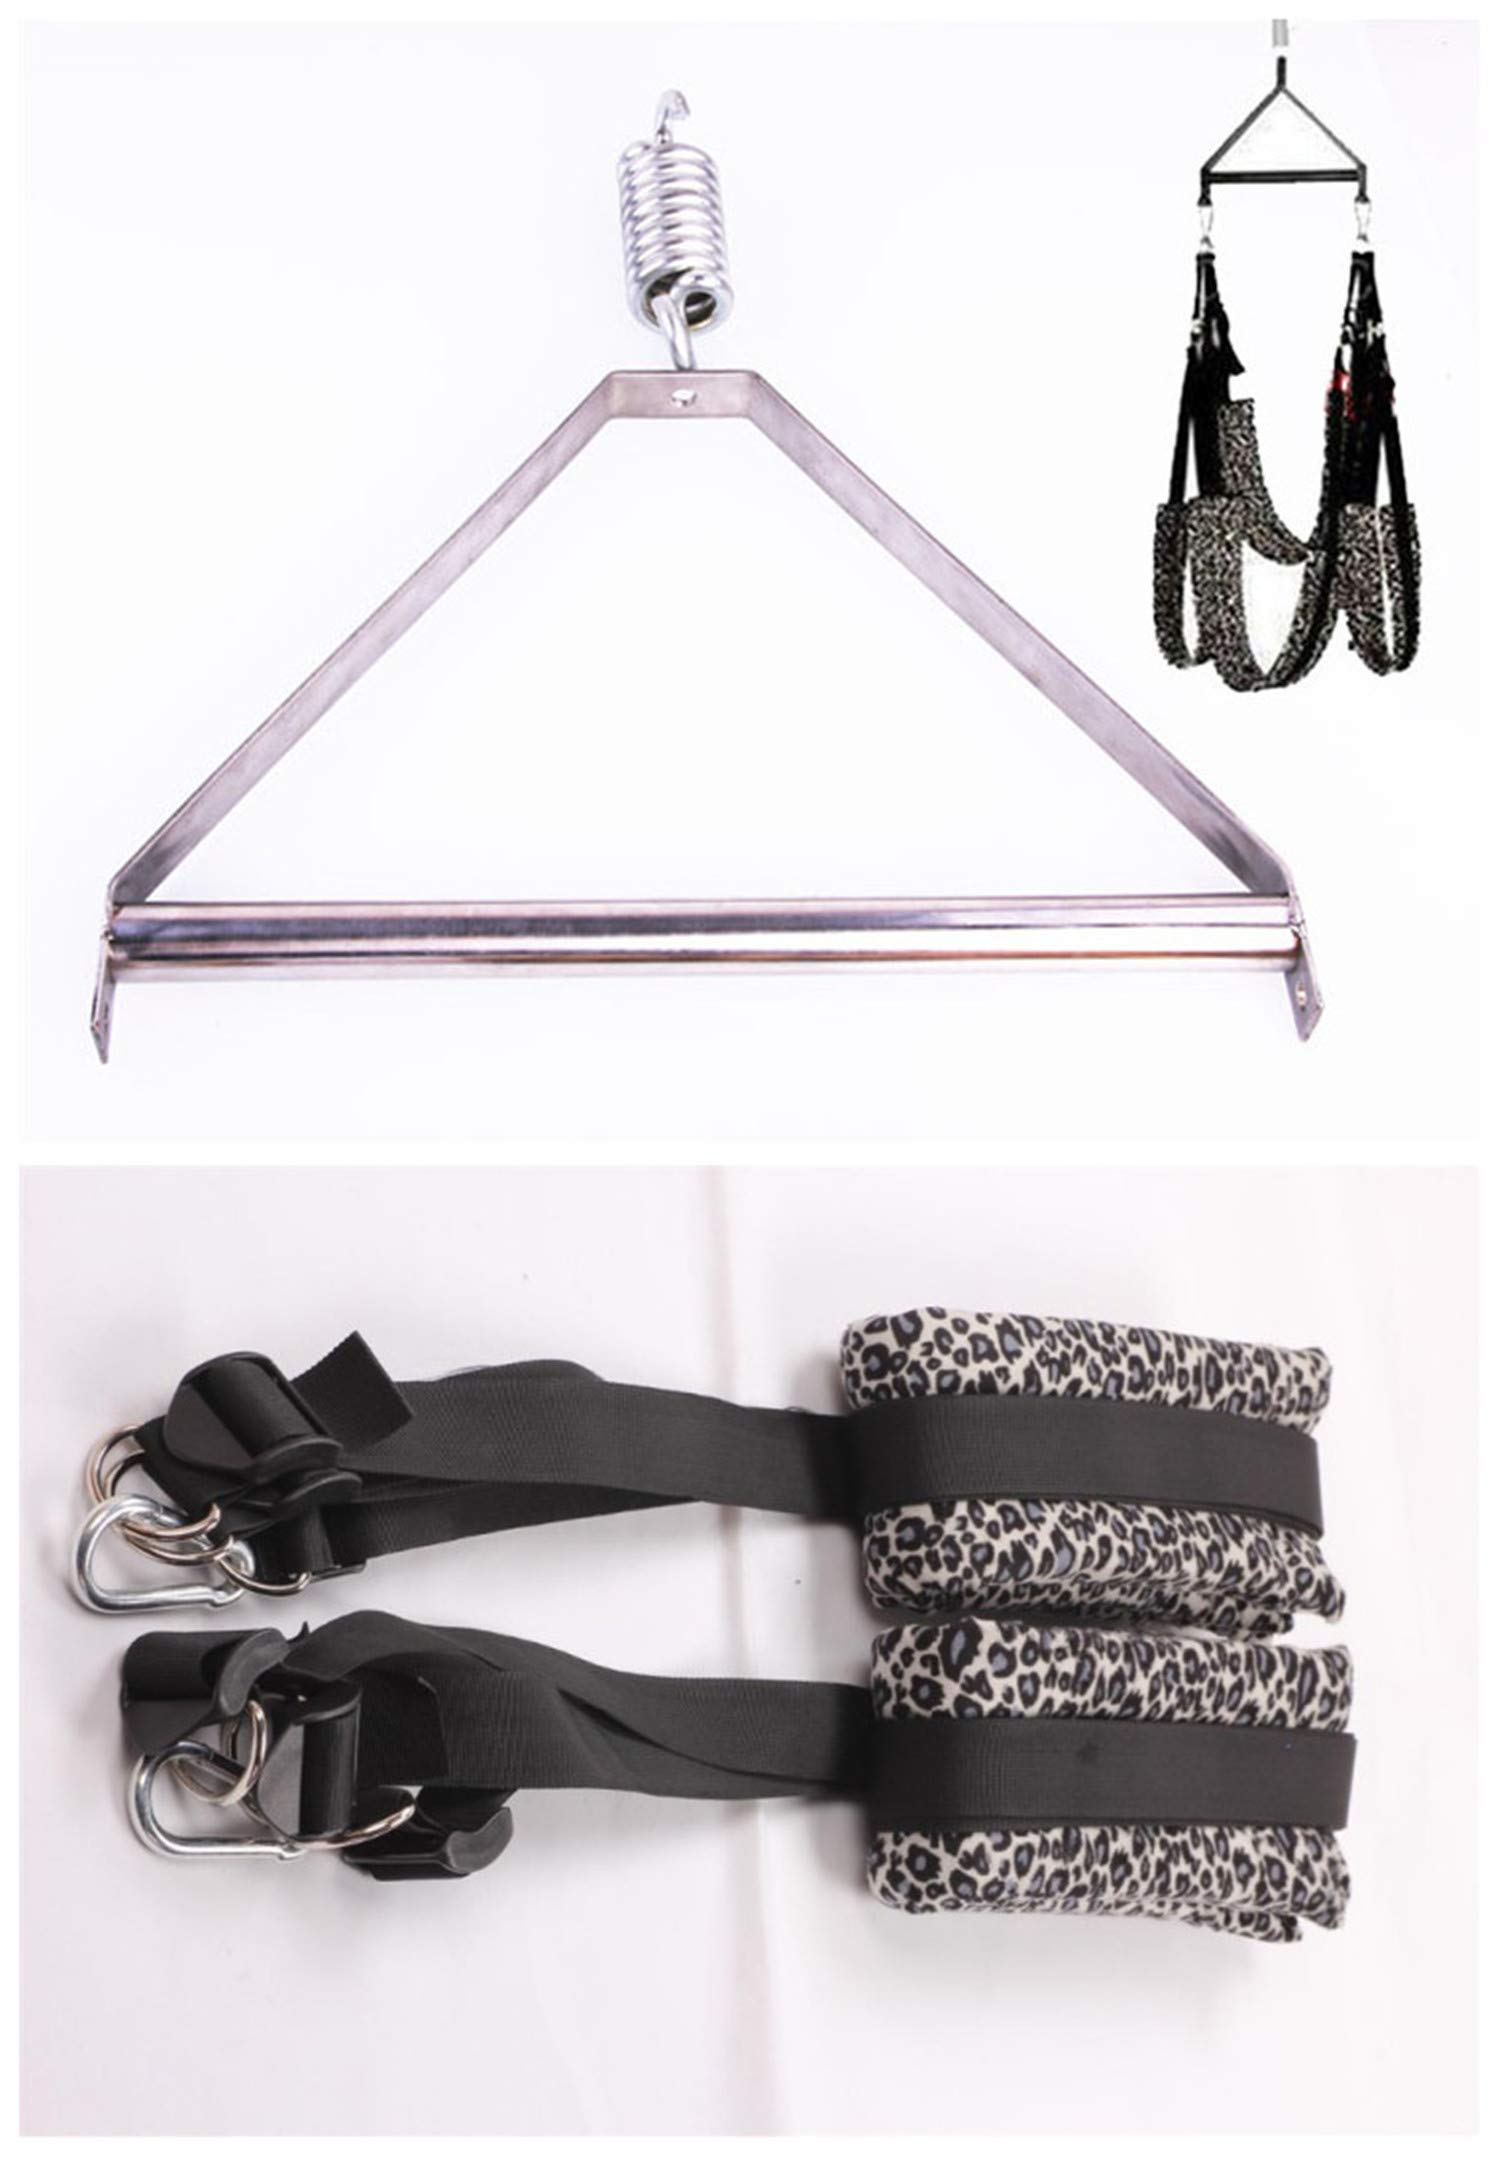 1Set Adult Love Game Sex Swing with Steel Tripod Fetish Bondage Furniture Toys for Couples Women,Erotic Sex Swings